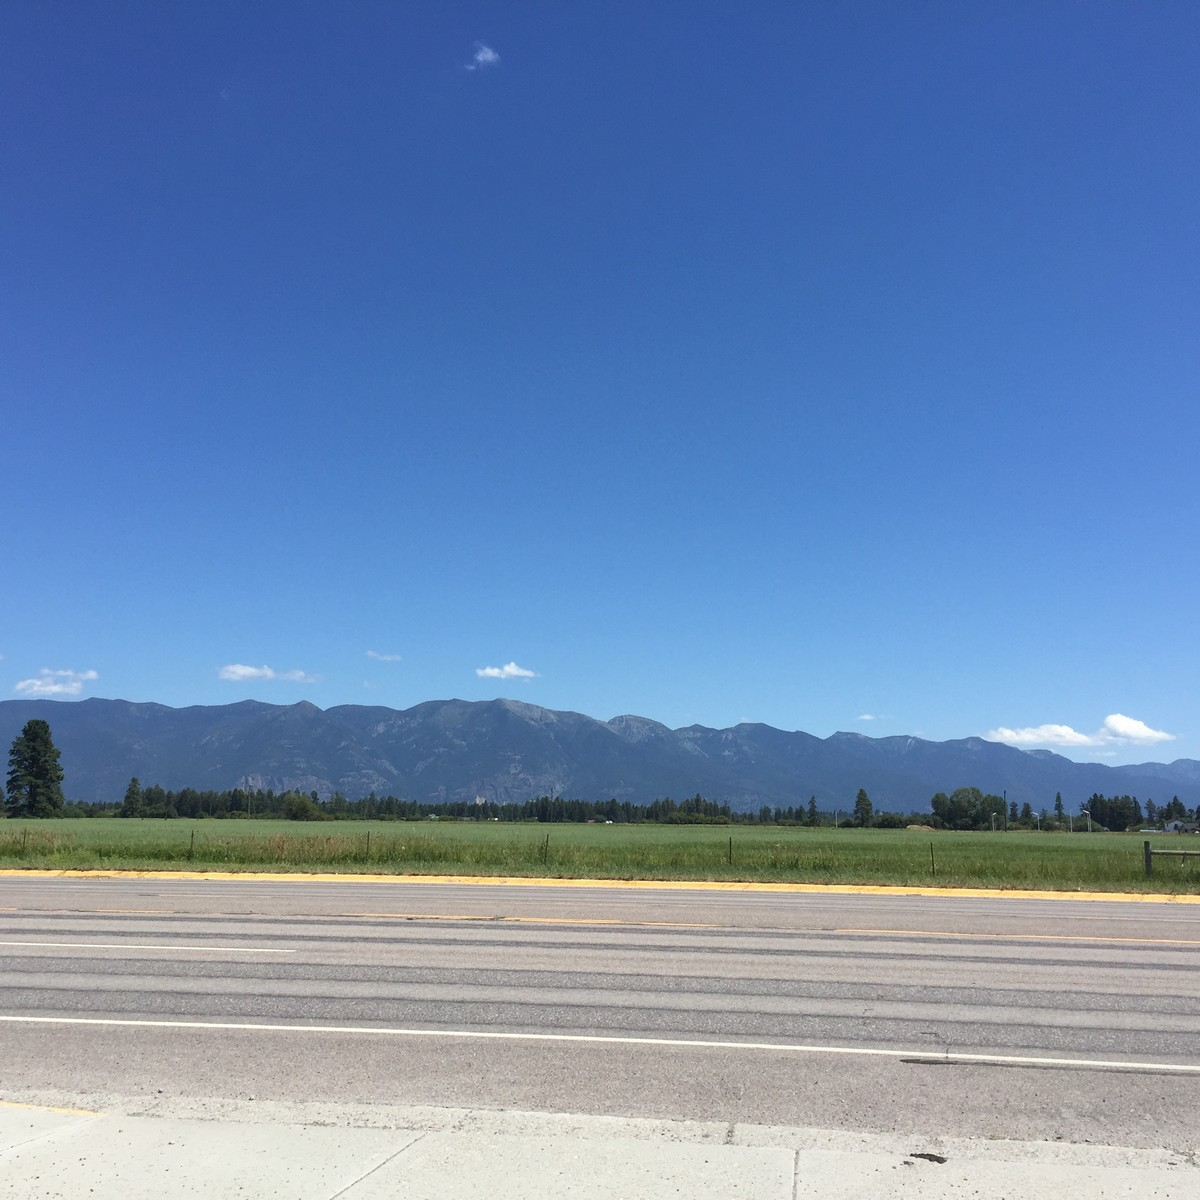 Land for Sale at 2664 Us Highway 2 E, Kalispell, MT 59901 2664 Us Highway 2 E Kalispell, Montana 59901 United States